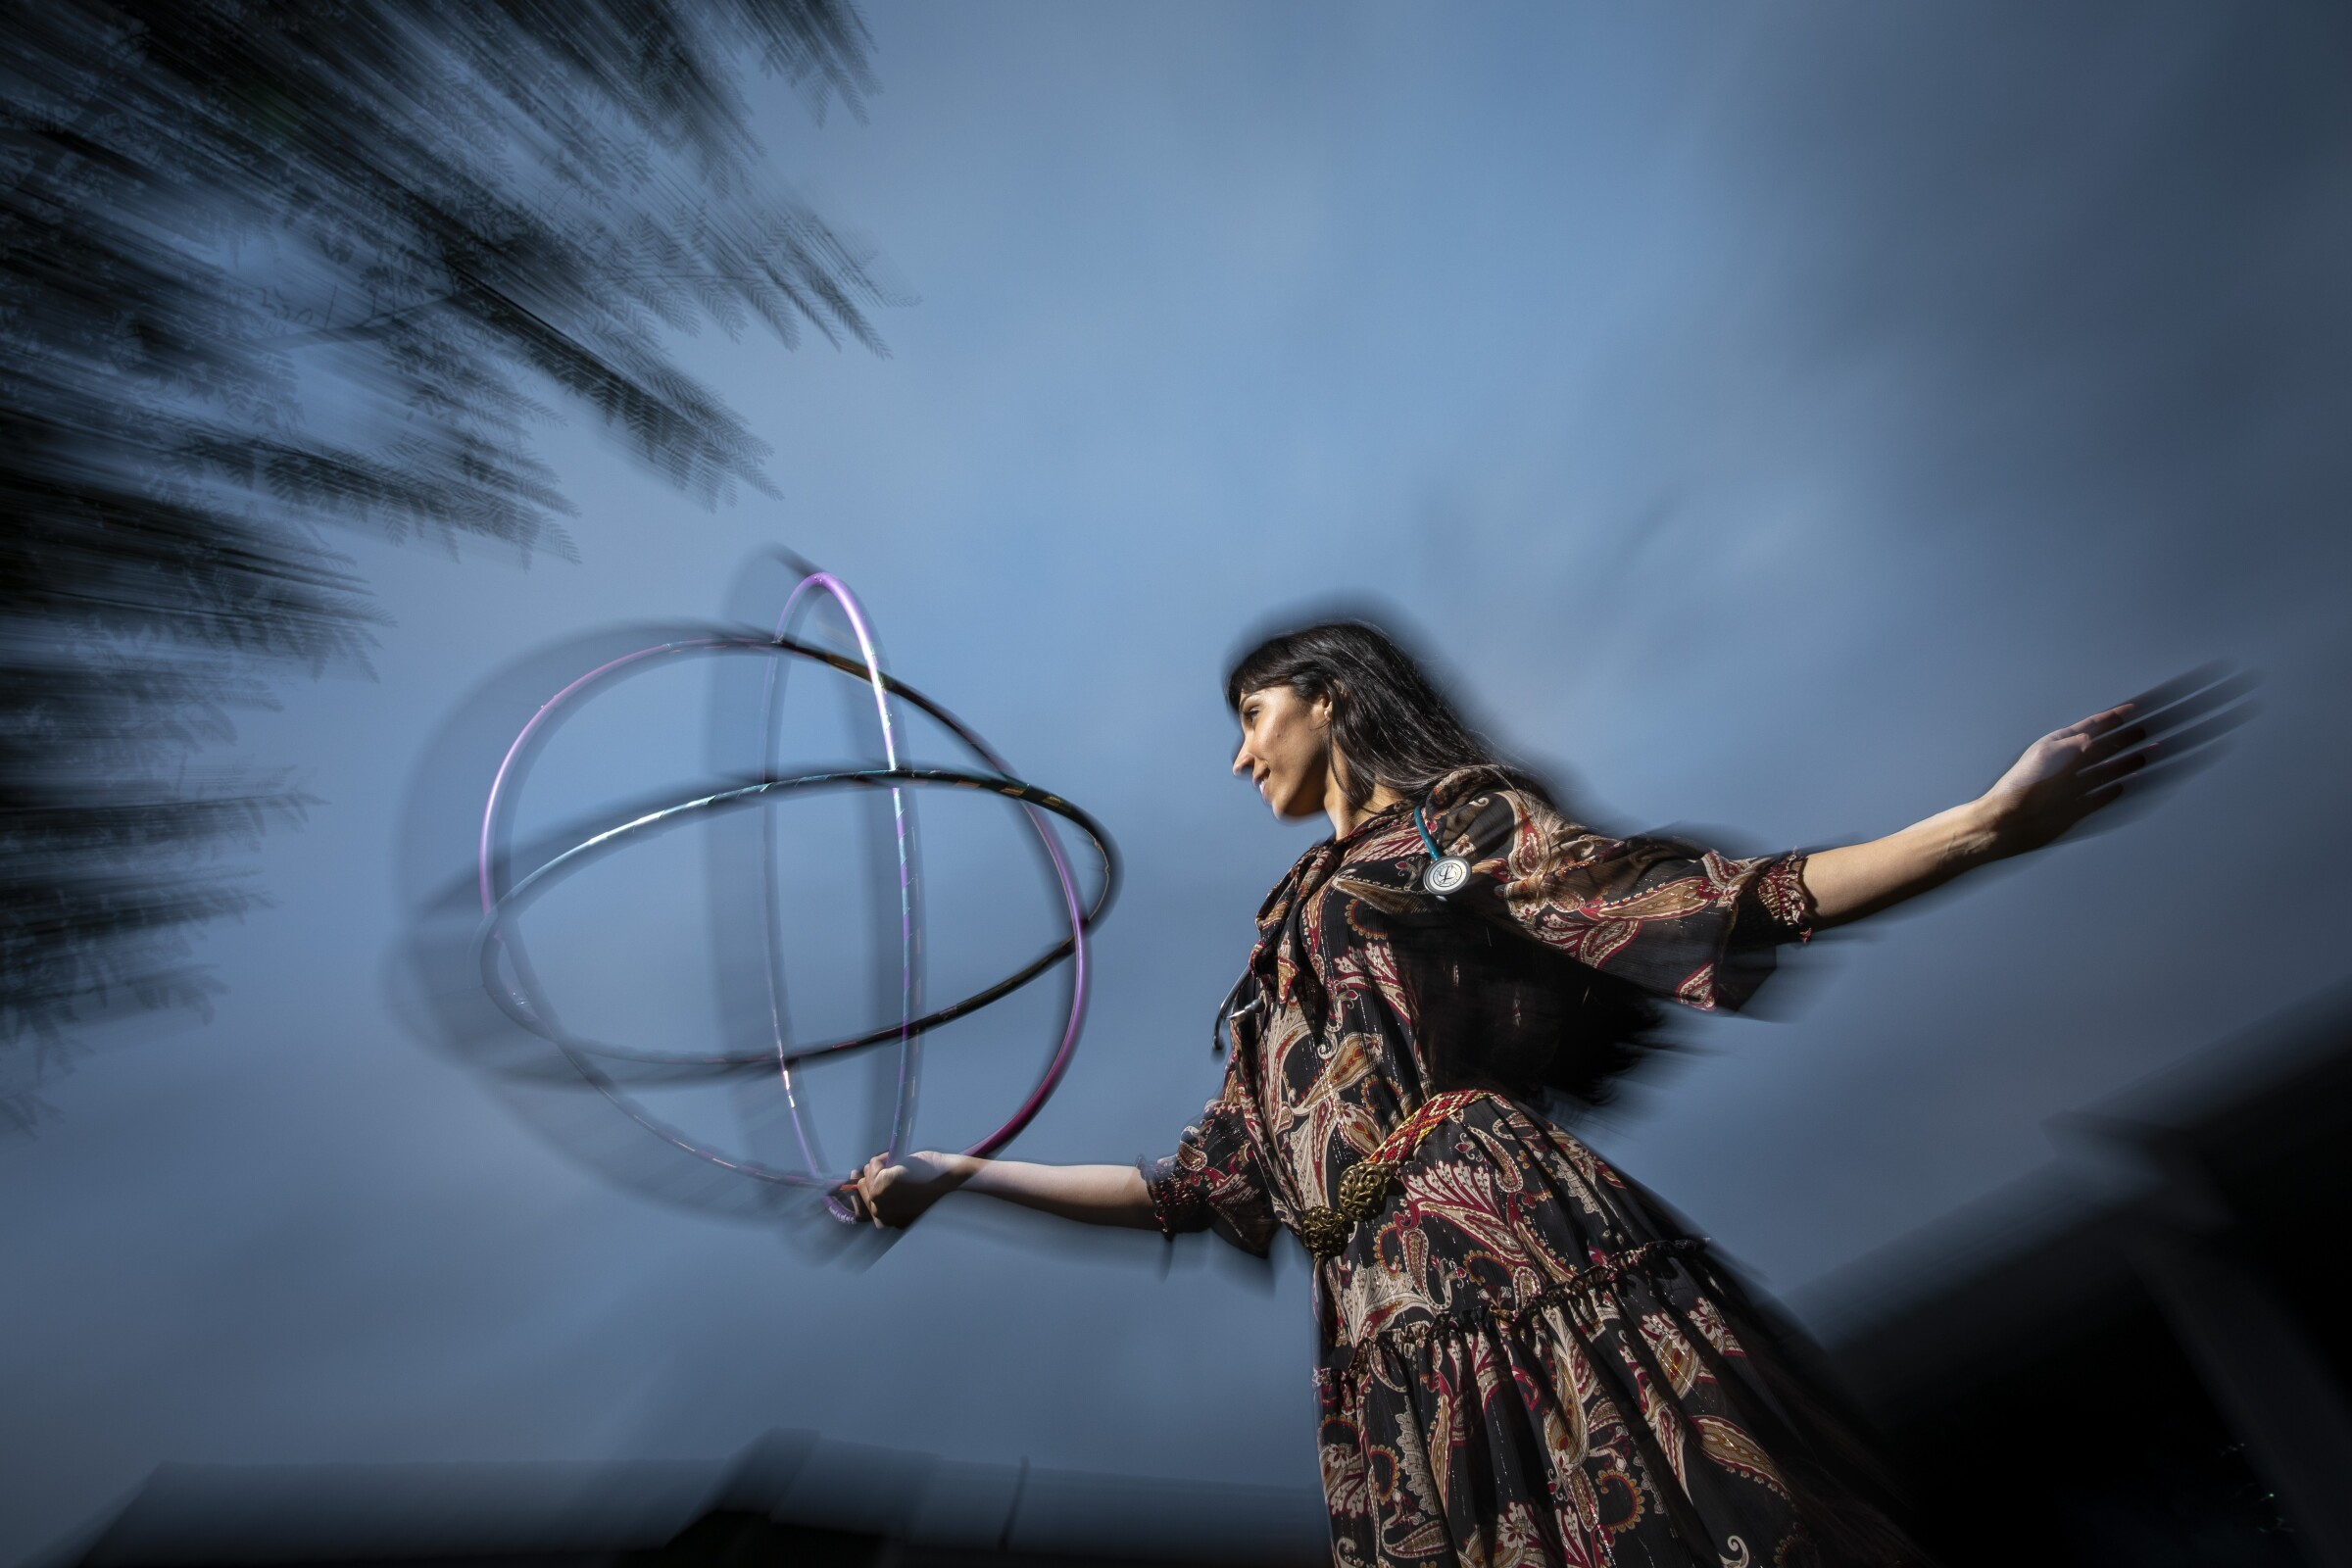 Dr. G. Sofia Nelson is pictured dancing with a hoop.